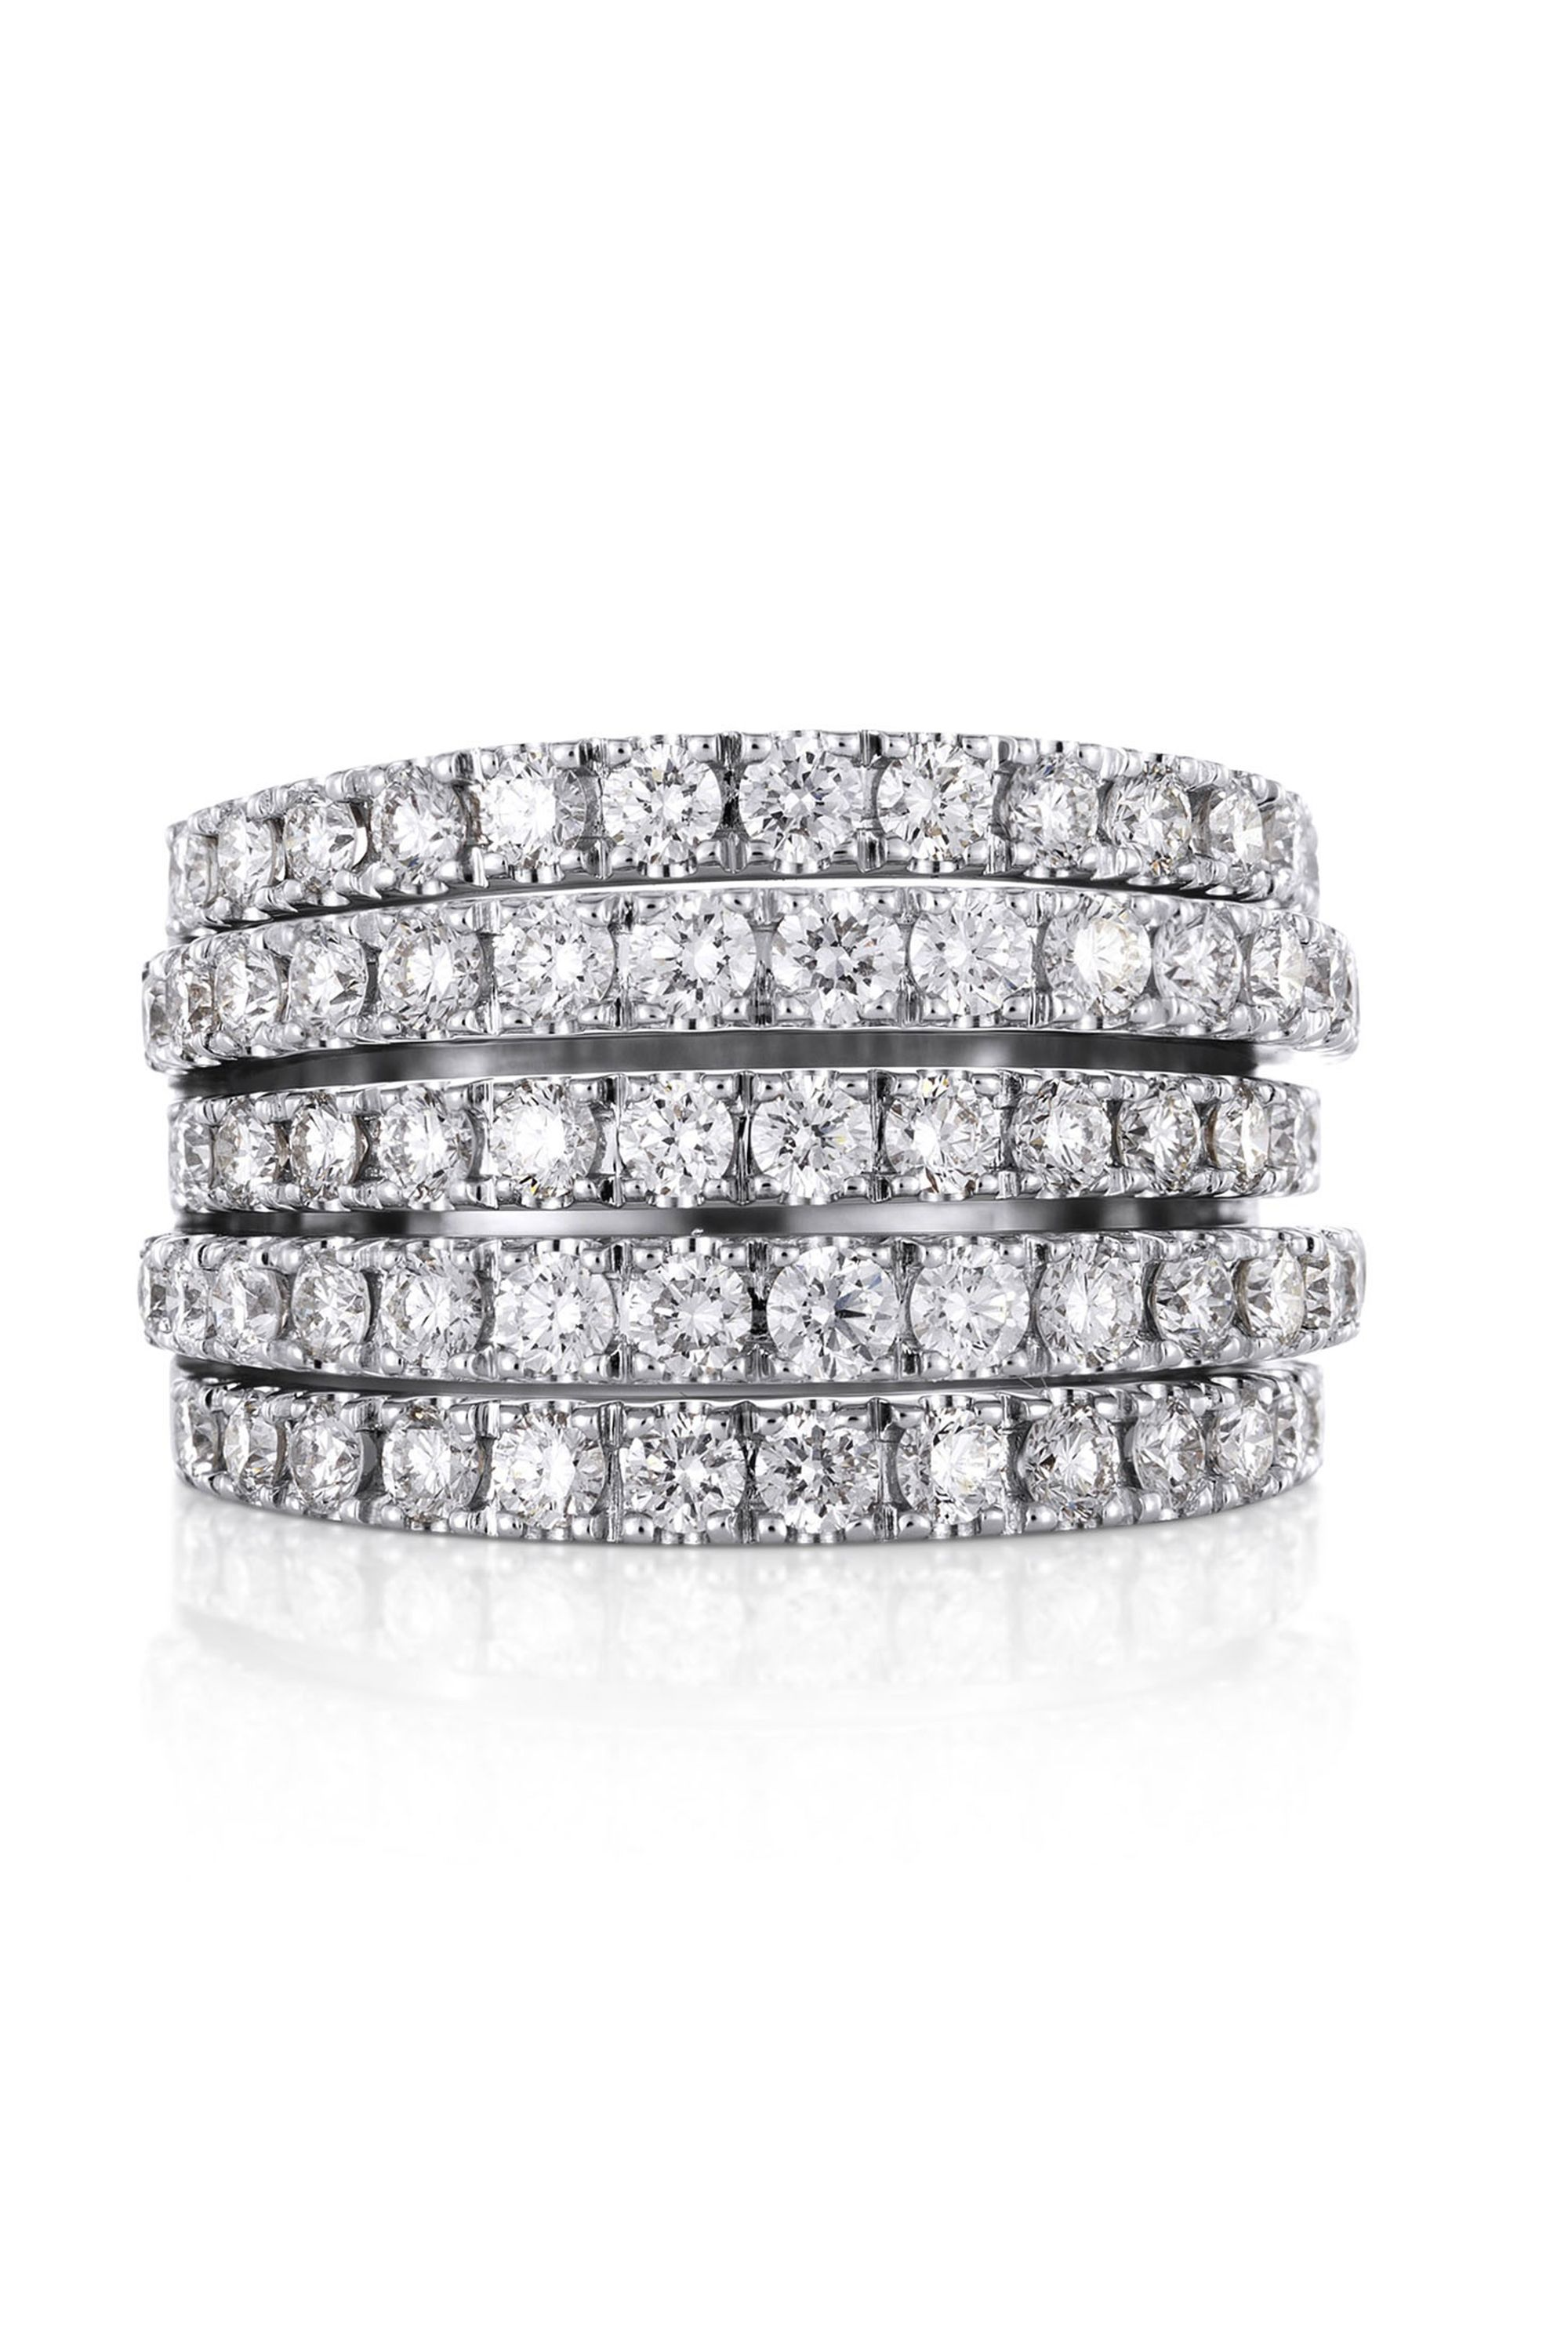 22fe06f8d6312 10 classic pieces of jewellery every woman should own - Cartier love  bracelet